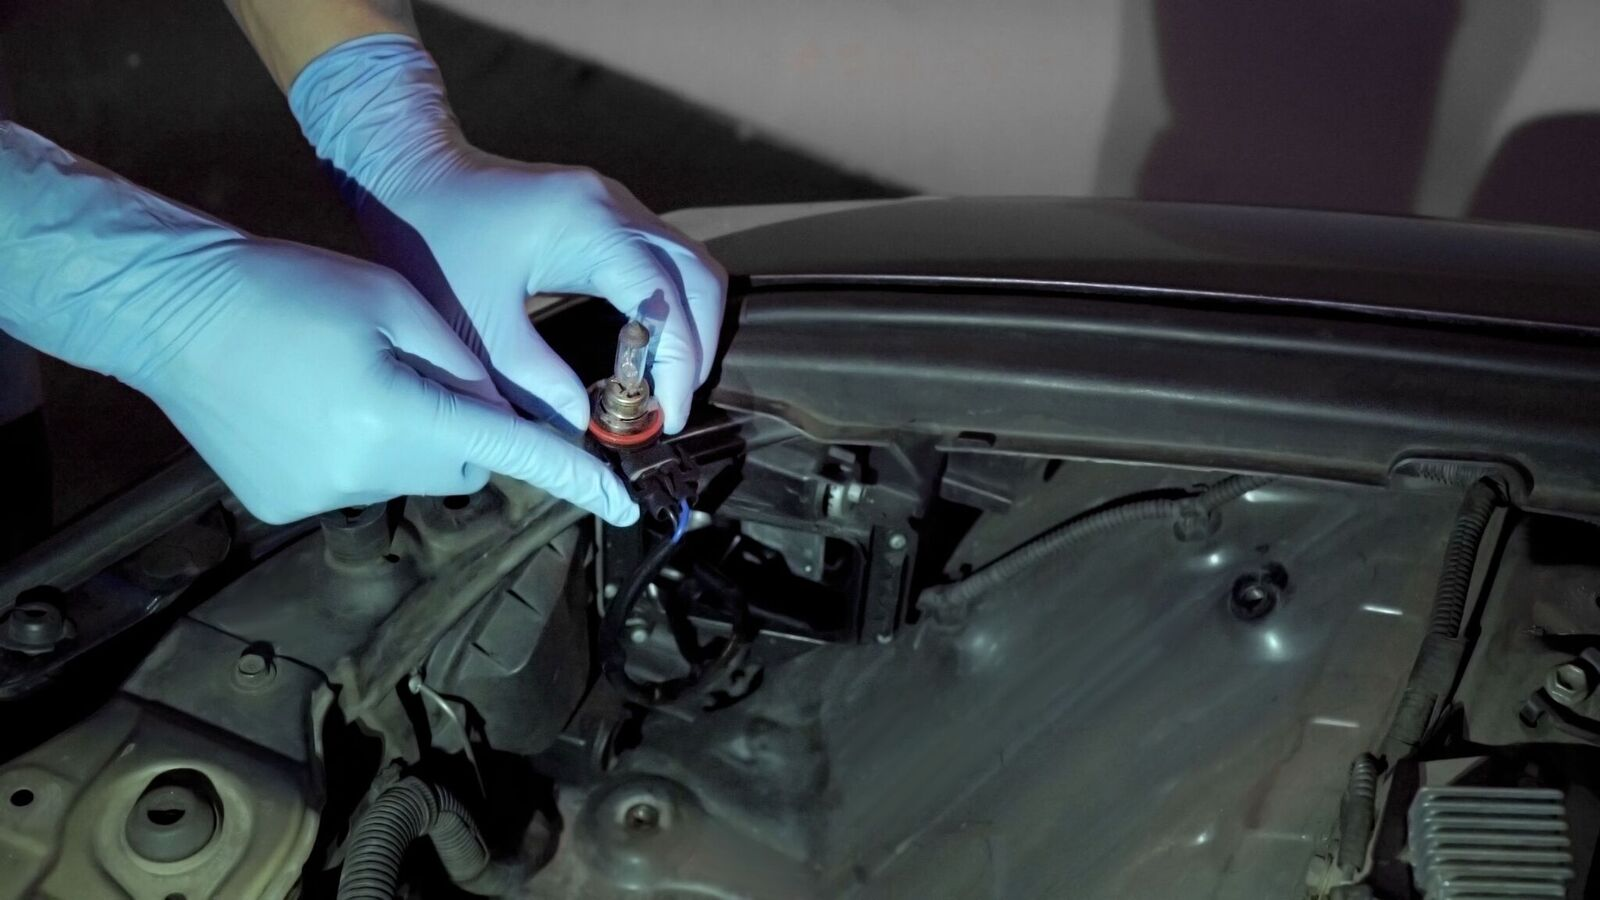 Fluxbeam Led Headlight H11 Bulb Installation Opt7 Hid Wiring Schematic Detach The Wires From